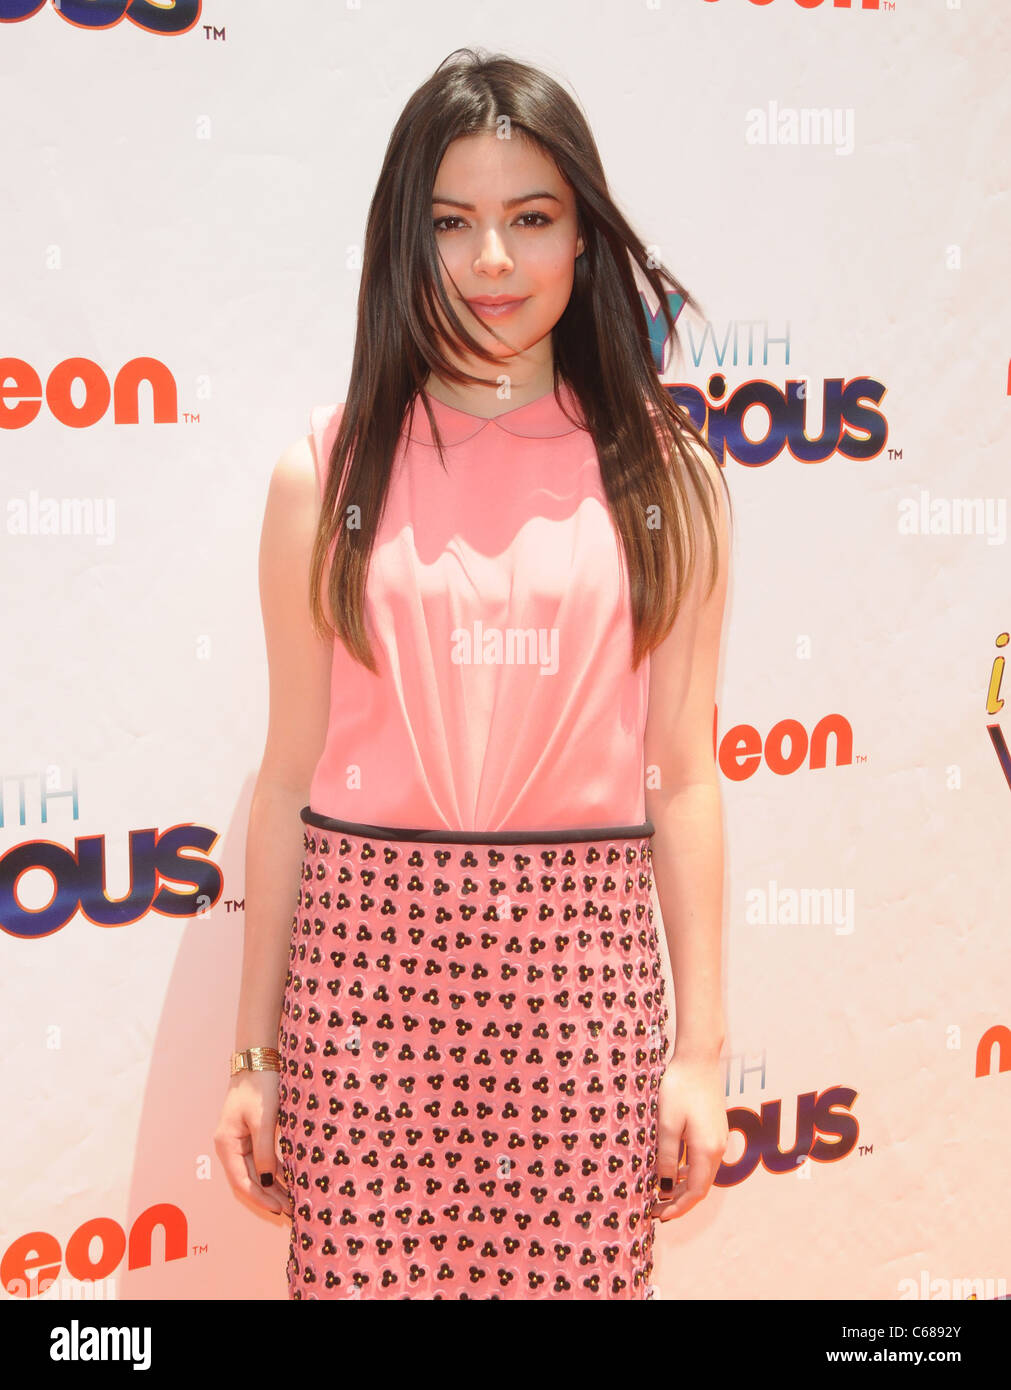 Miranda Cosgrove at arrivals for iParty With Victorious Premiere Party, The Lot, Los Angeles, CA June 4, 2011. Photo - Stock Image